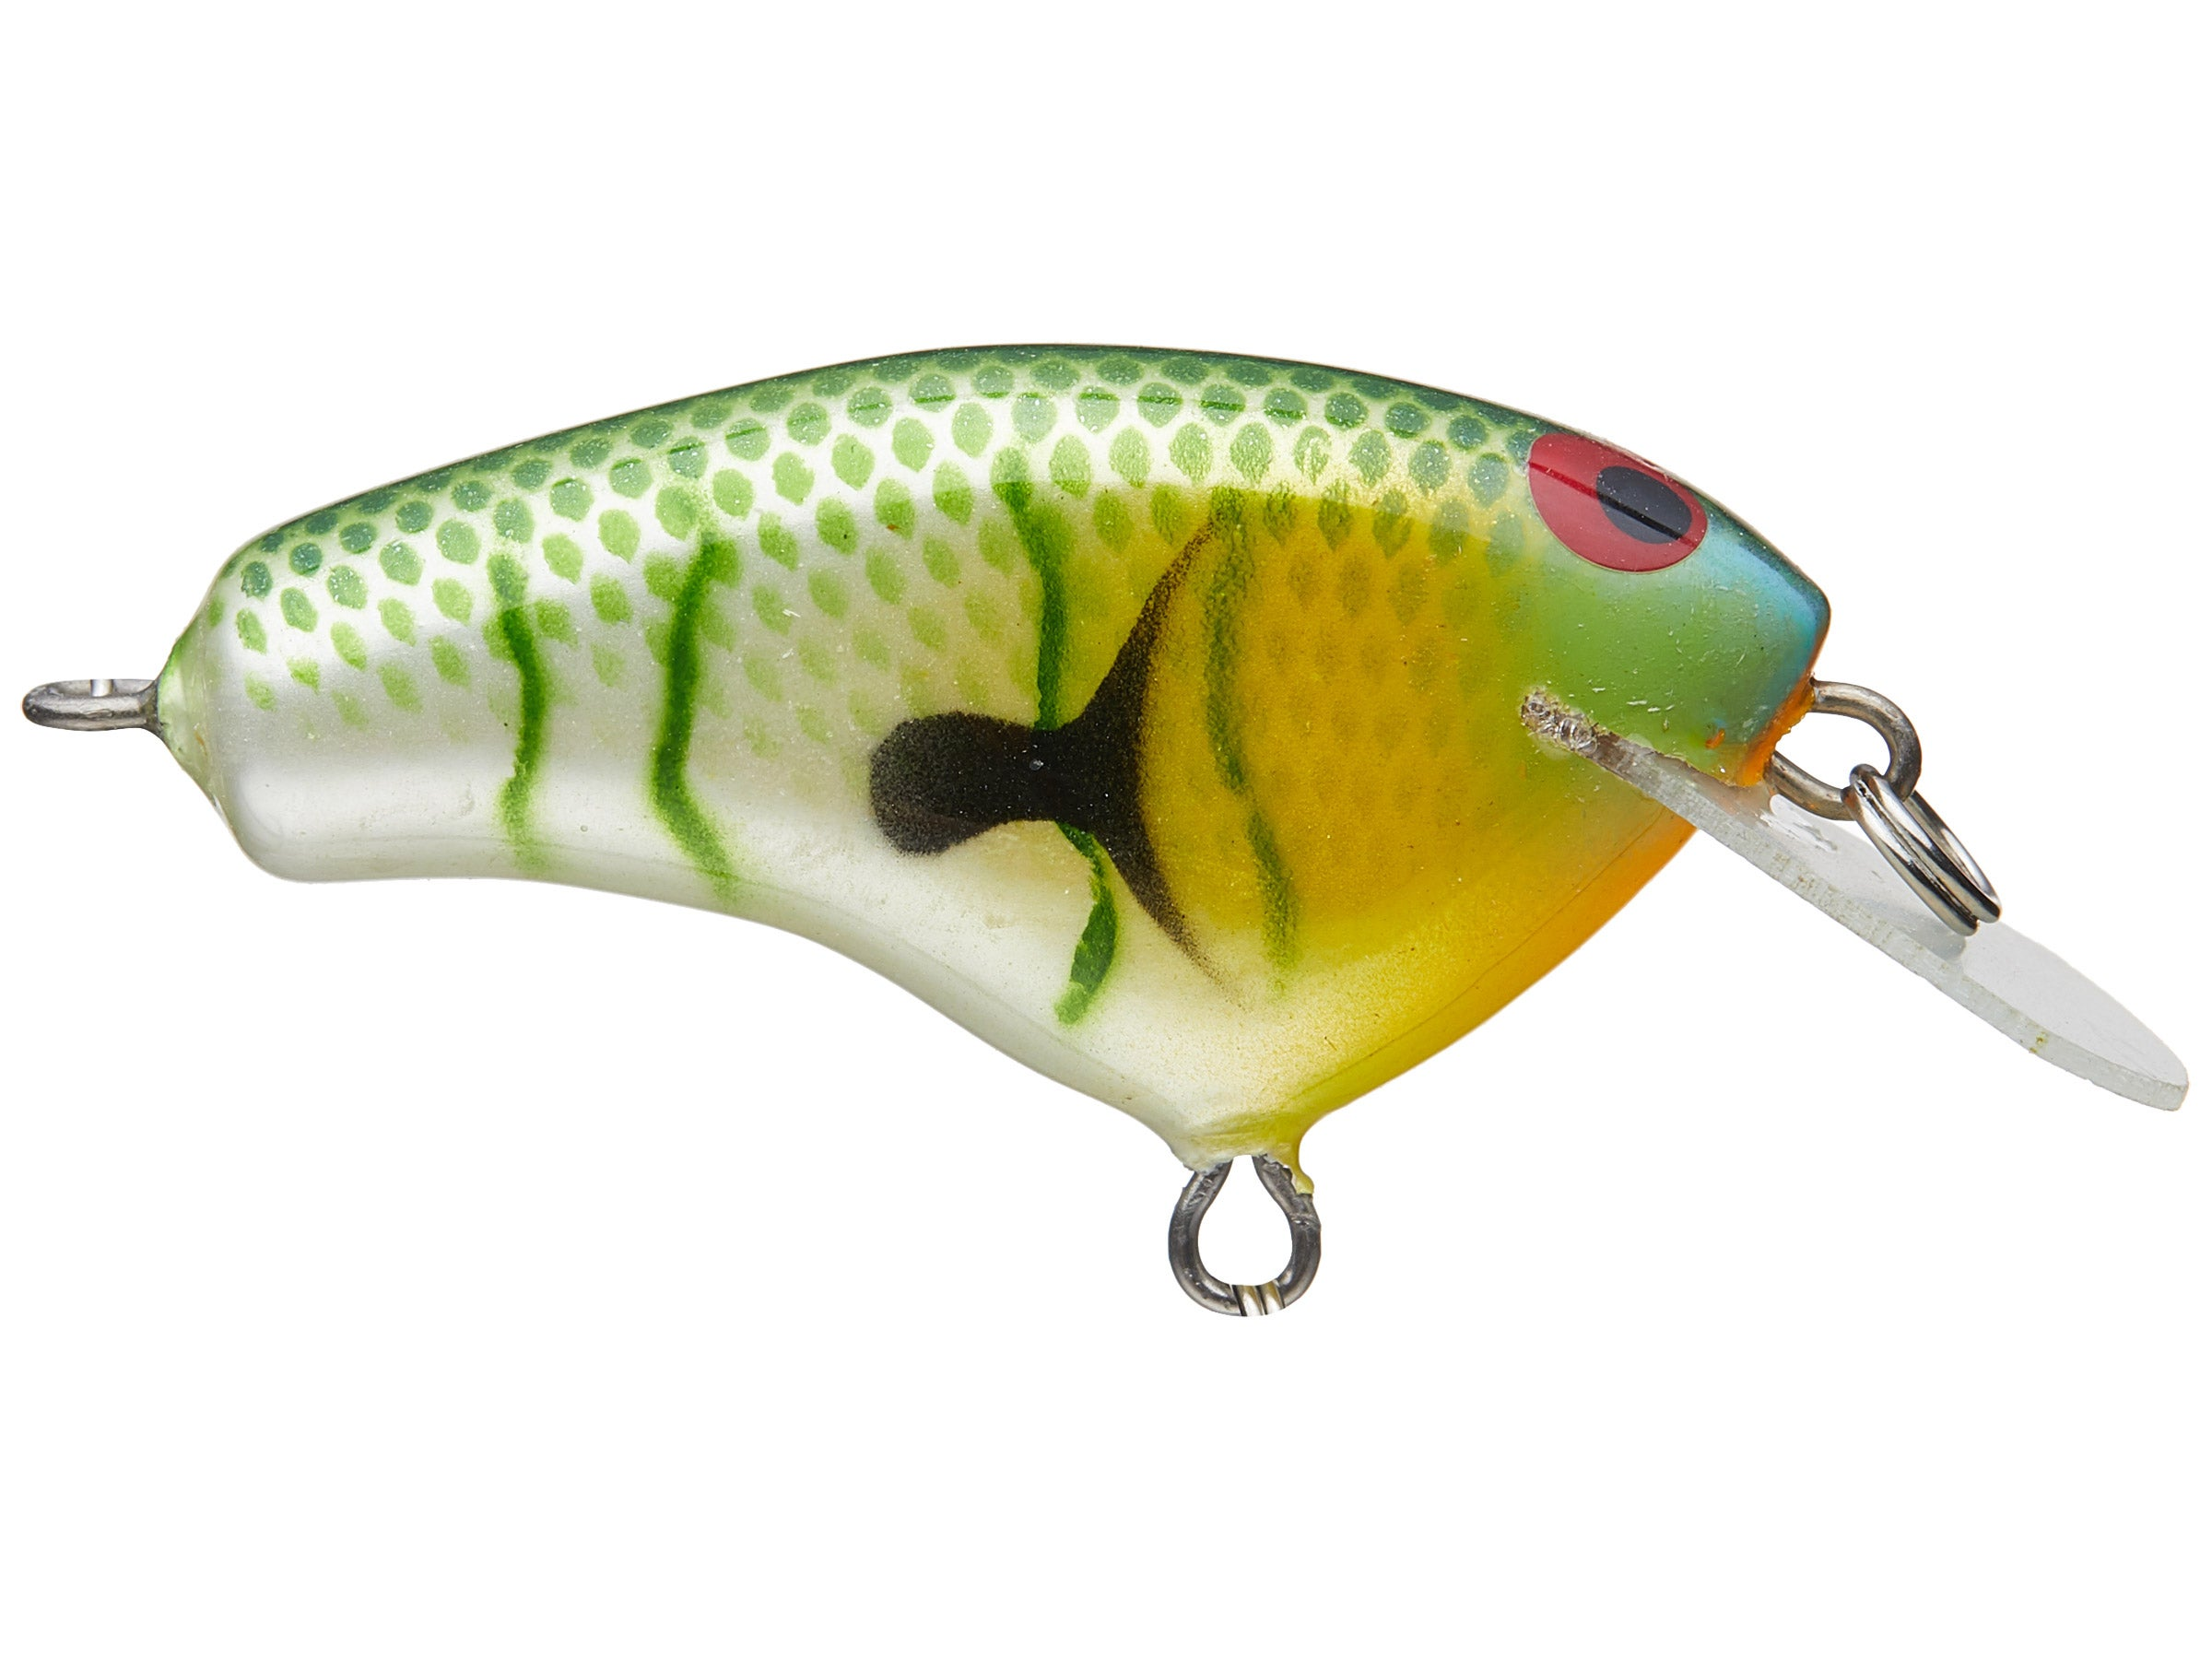 PH Custom Lures Lil Guy Crankbait